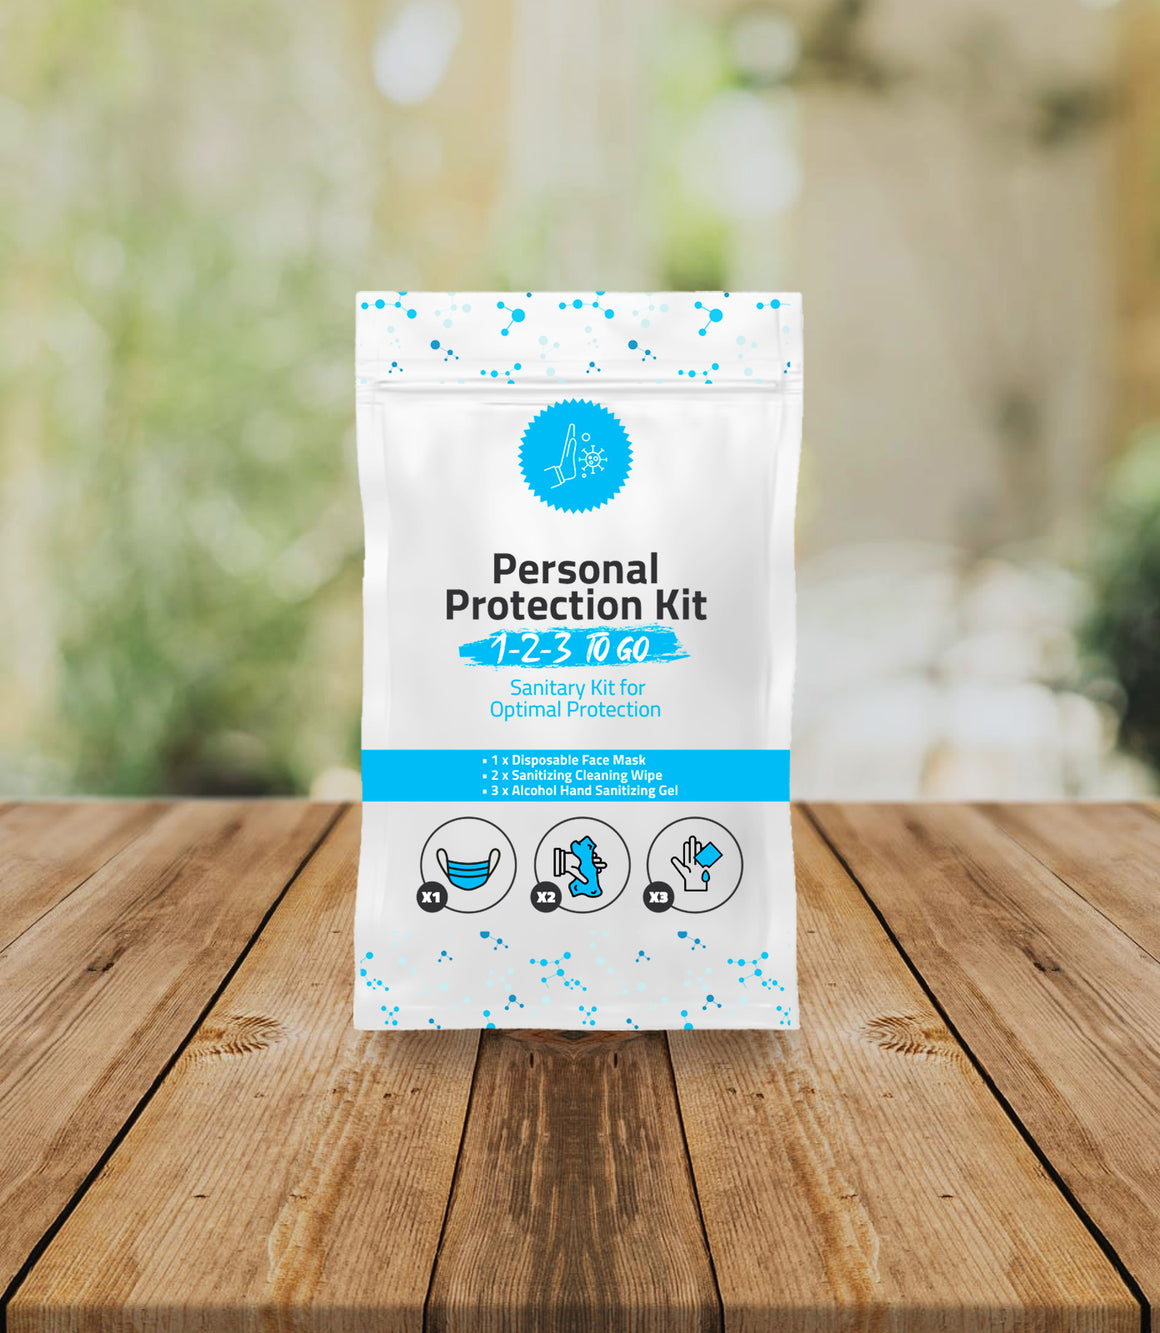 1-2-3 All-In-One Personal Protection Kits TO GO – Sanitary Kits for Optimal Protection